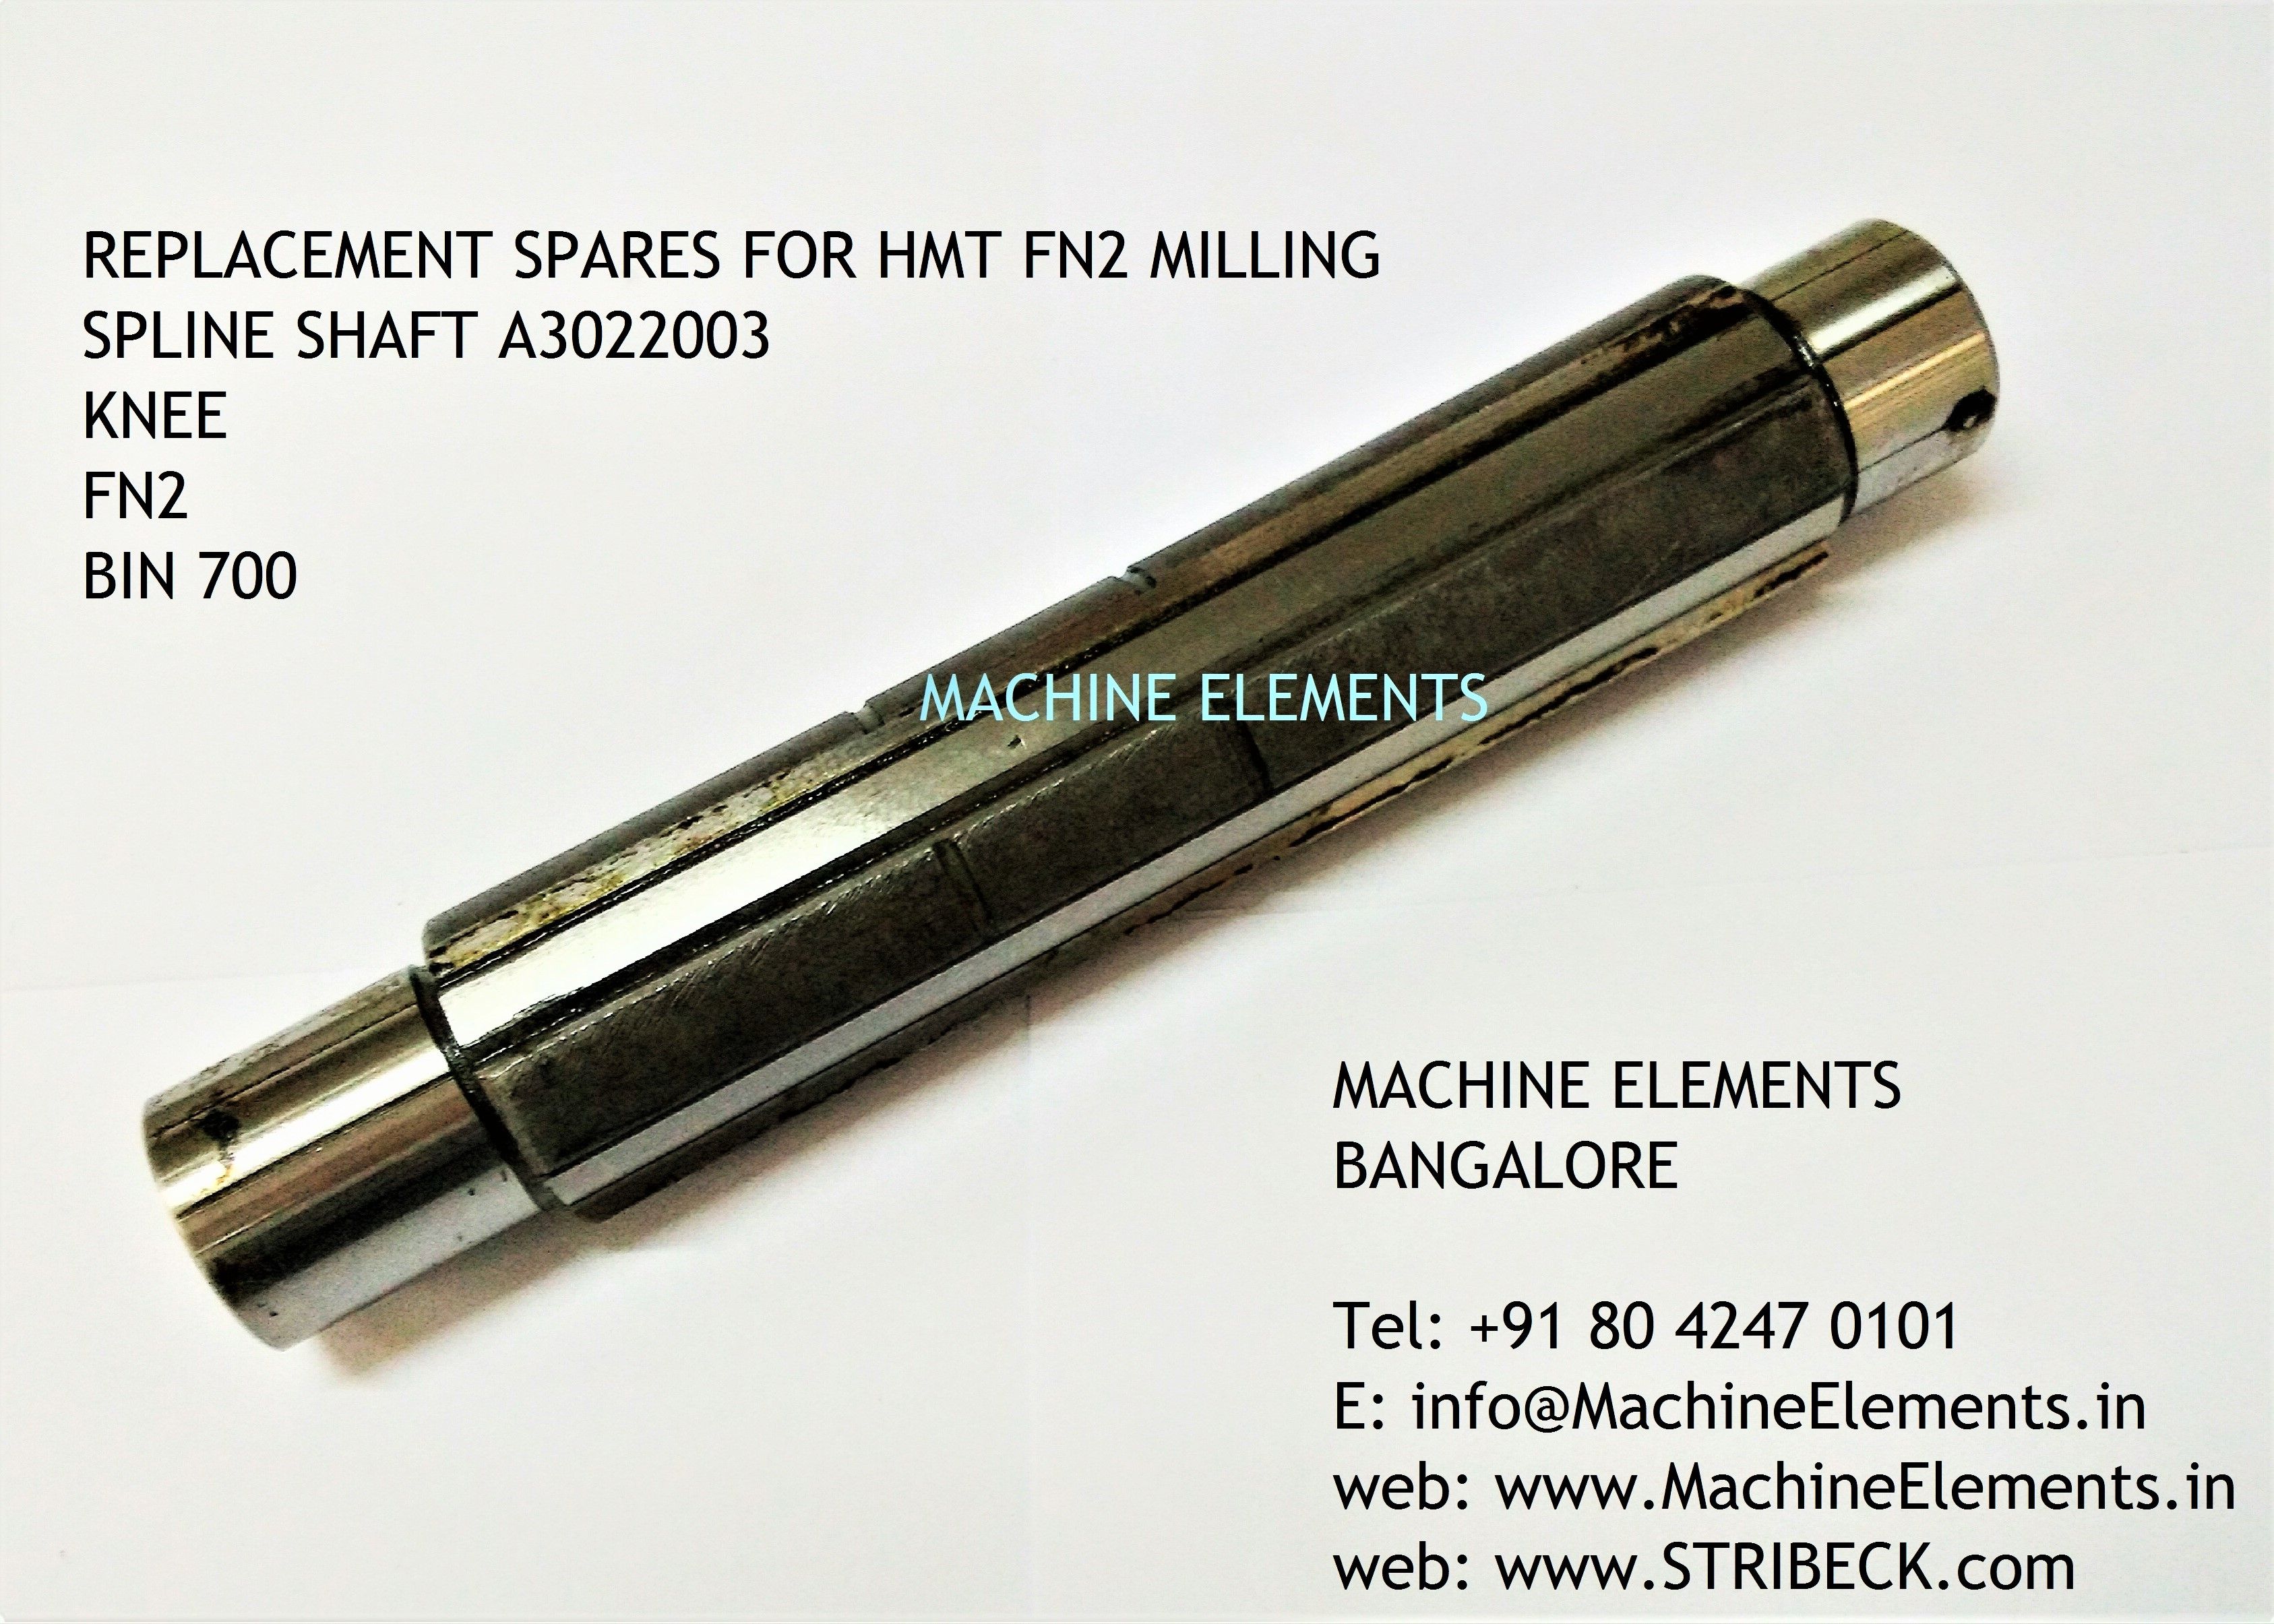 SPLINE SHAFT A3022003